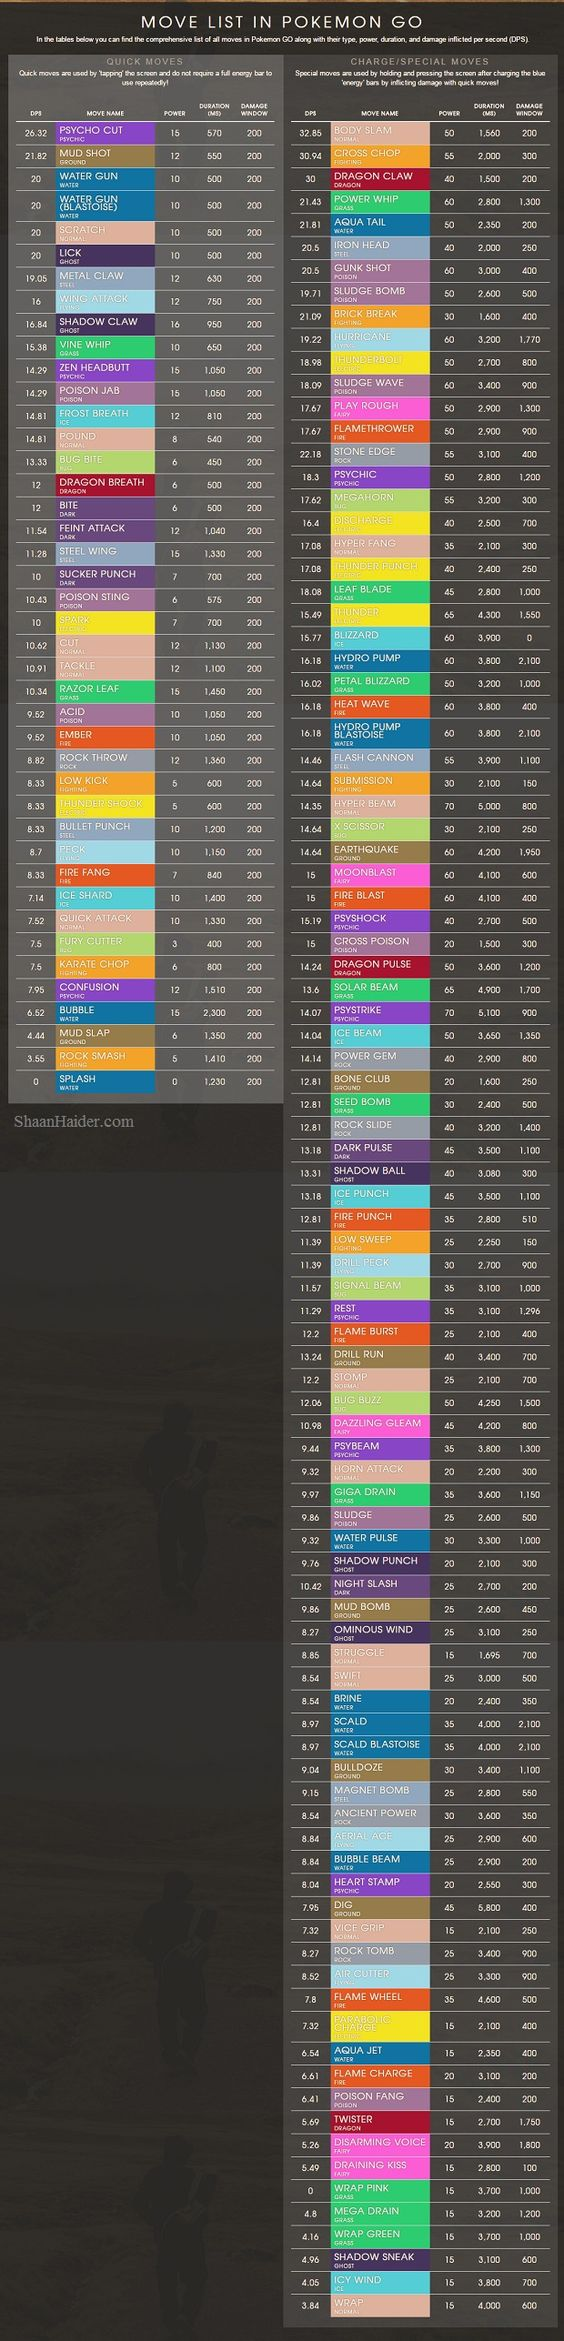 Pokemon GO Cheat Sheet : Species Stats for All 151 Pokemons, Trainer Levels XP Details, Moves List (Infographic) - www.ShaanHaider.com